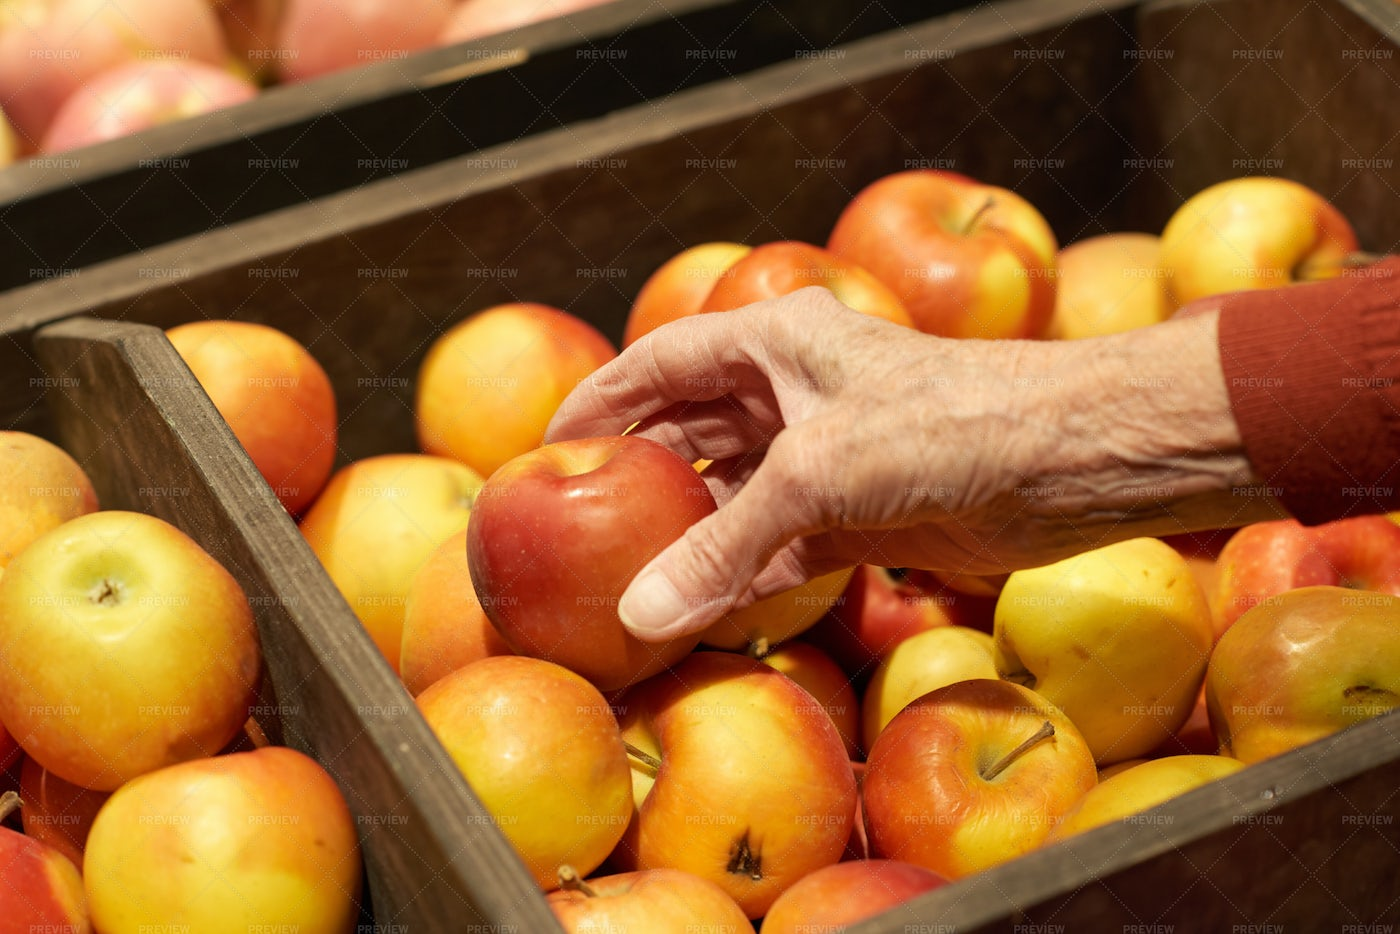 Hand Taking Apples In Supermarket: Stock Photos